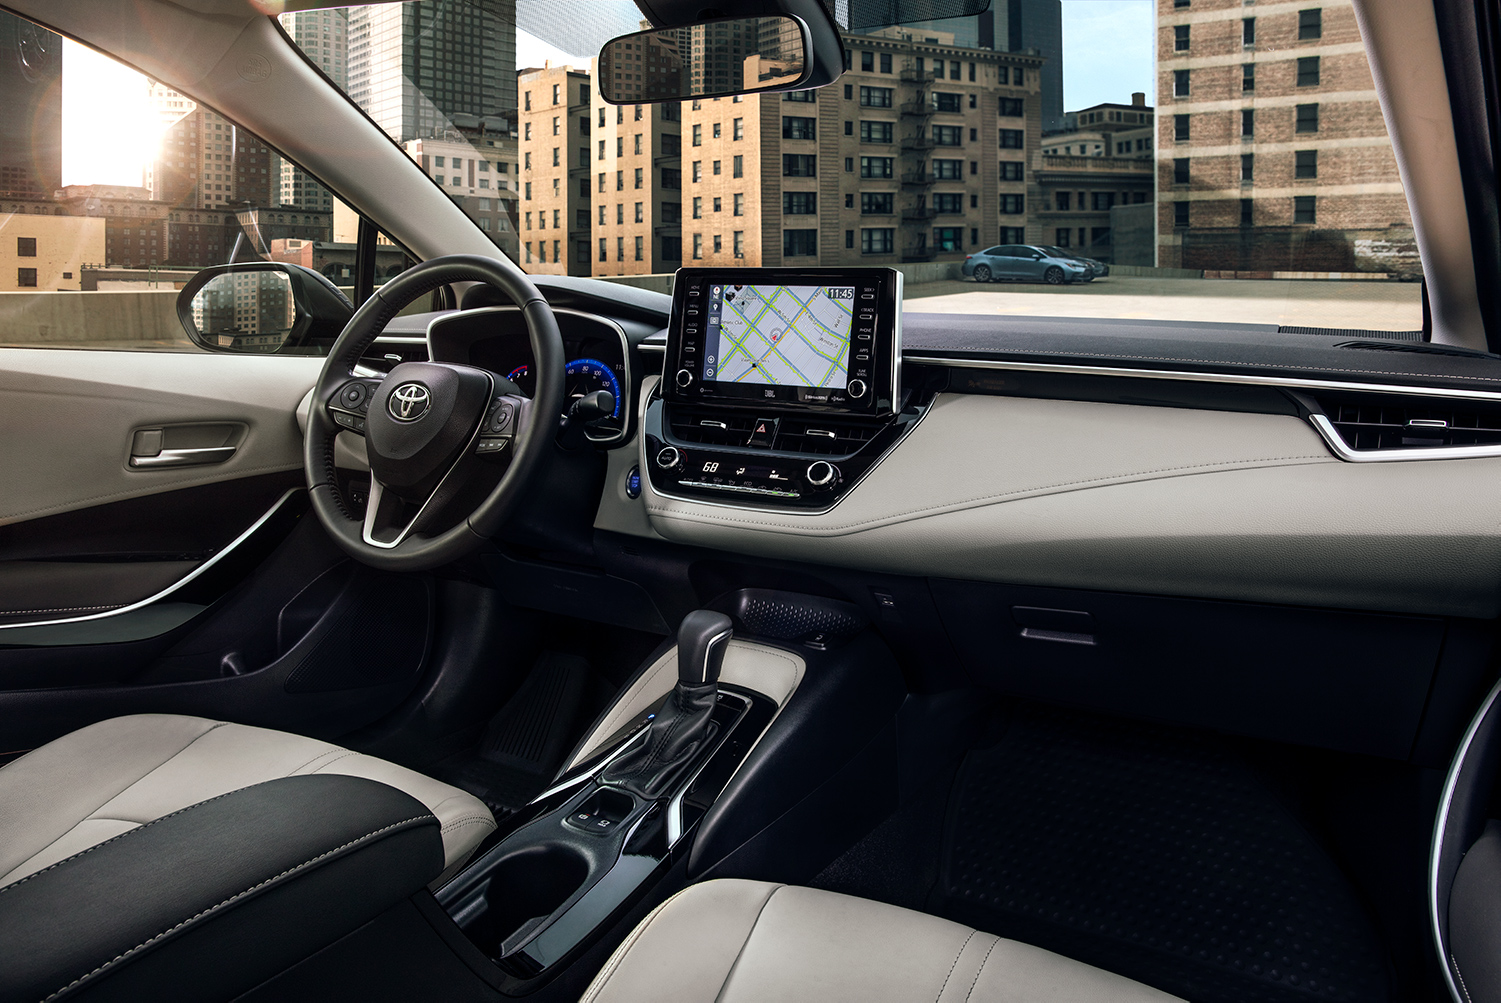 Model Features of the 2020 Toyota Corolla at Tri County Toyota in Royersford | The interior of the 2020 Corolla Hybrid